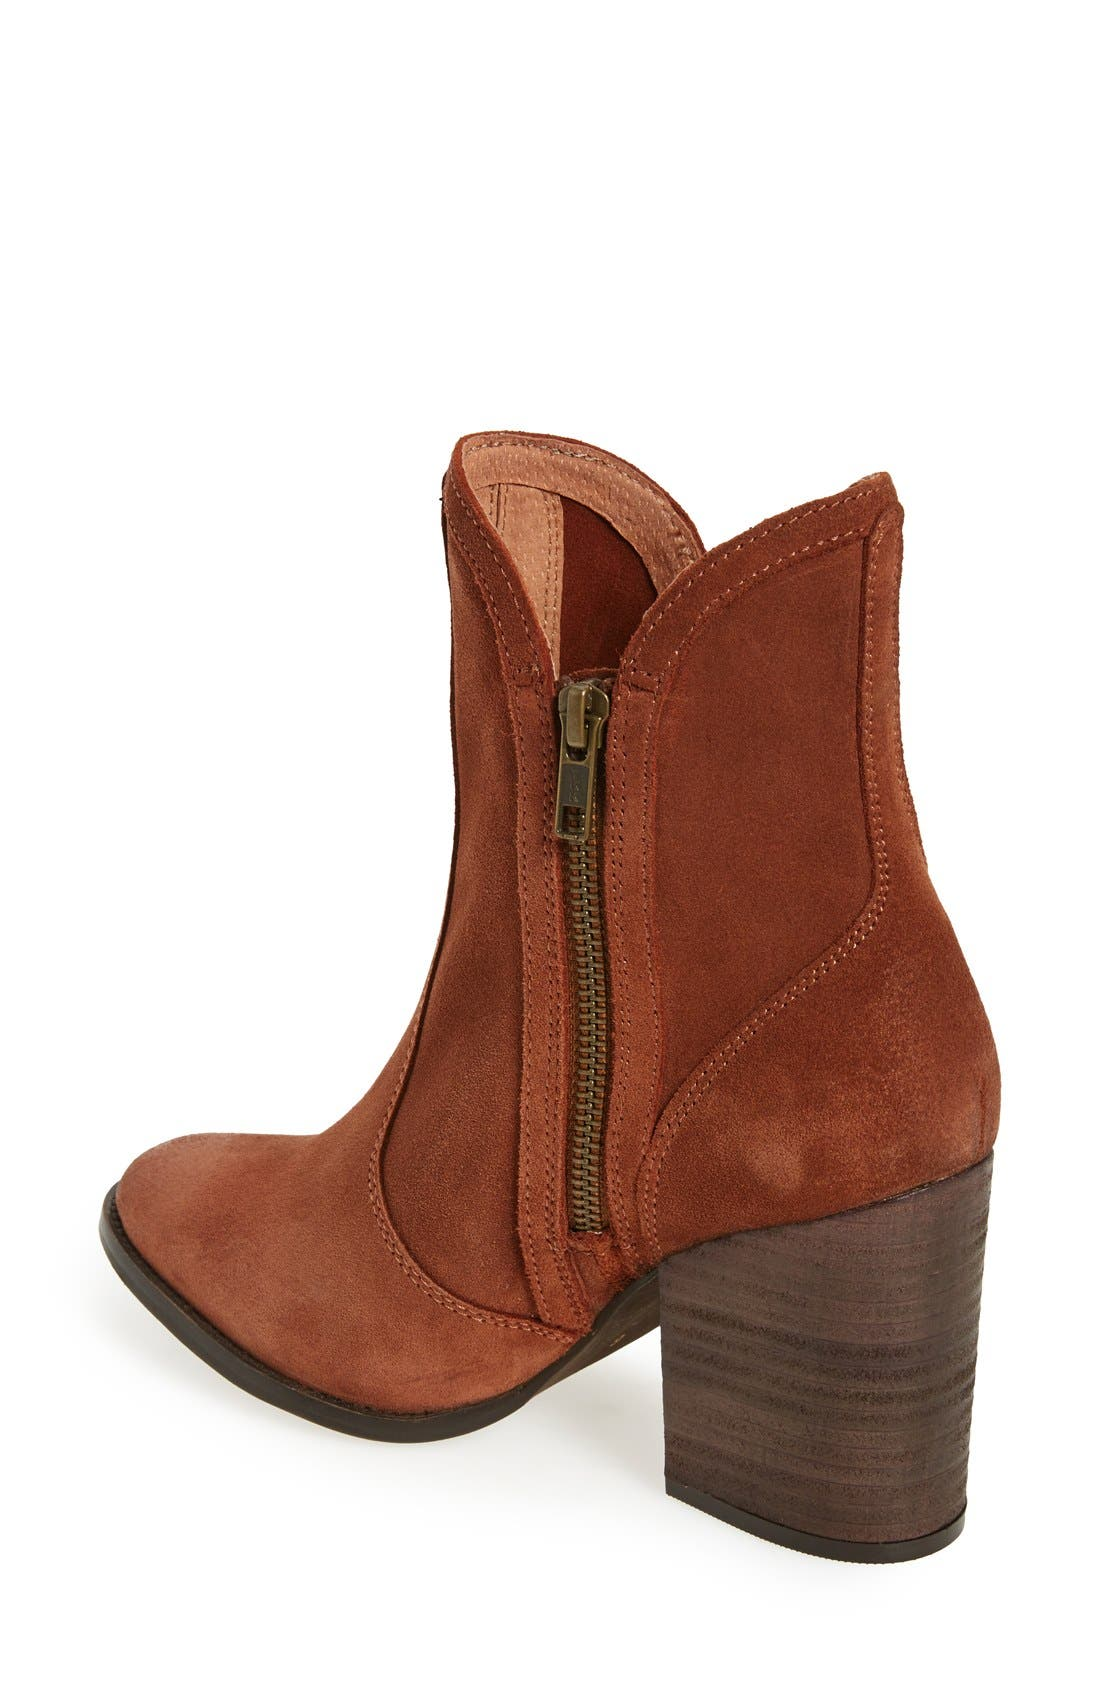 Lori Block Heel Western Bootie,                             Alternate thumbnail 2, color,                             Cognac Suede